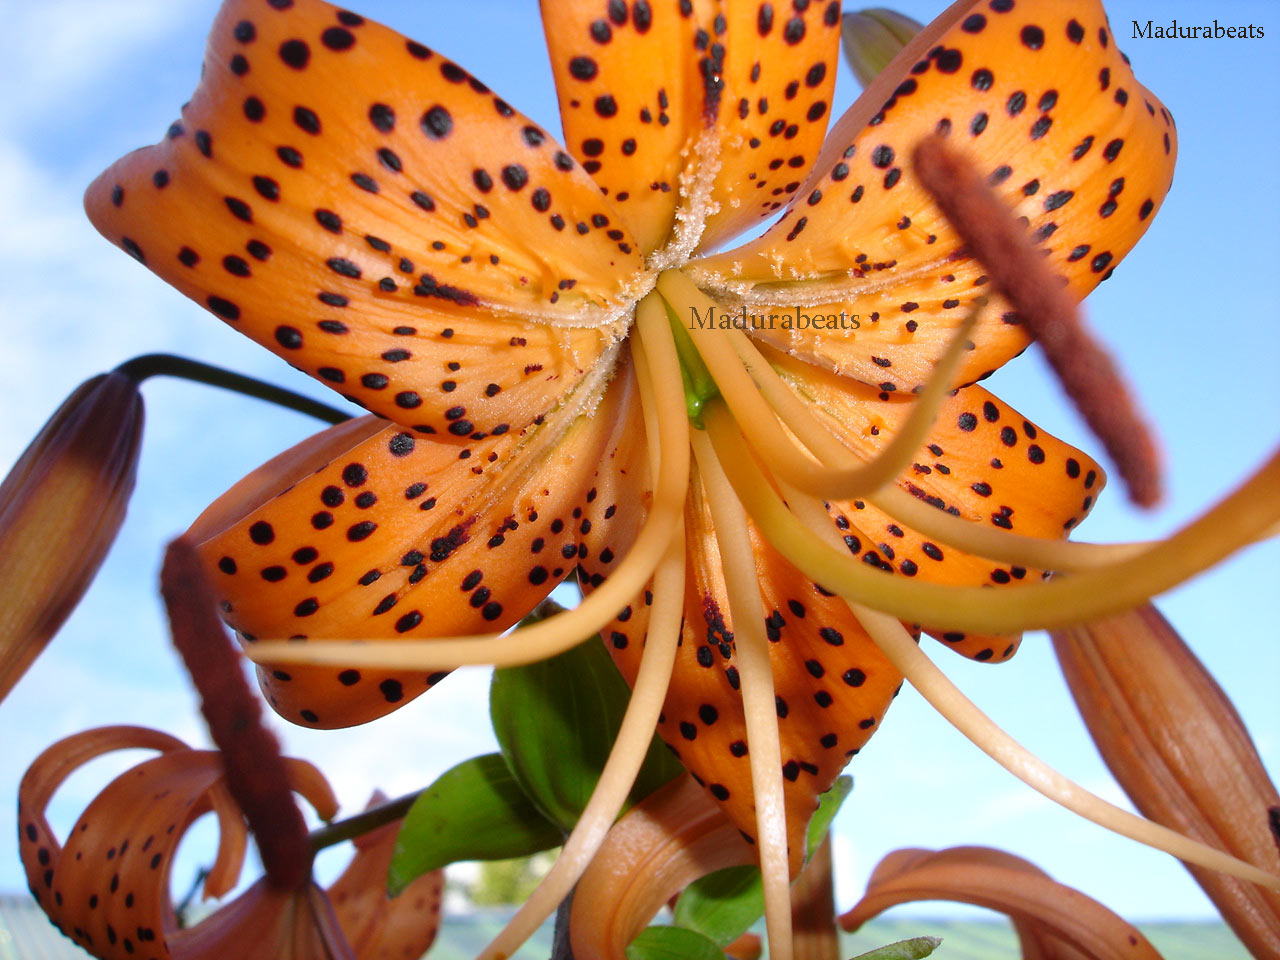 Flower images, Wide screen wallpapers,fresh flowers,Beautiful flowers,Lilium_With_Sky_Background_hd_wallpaper